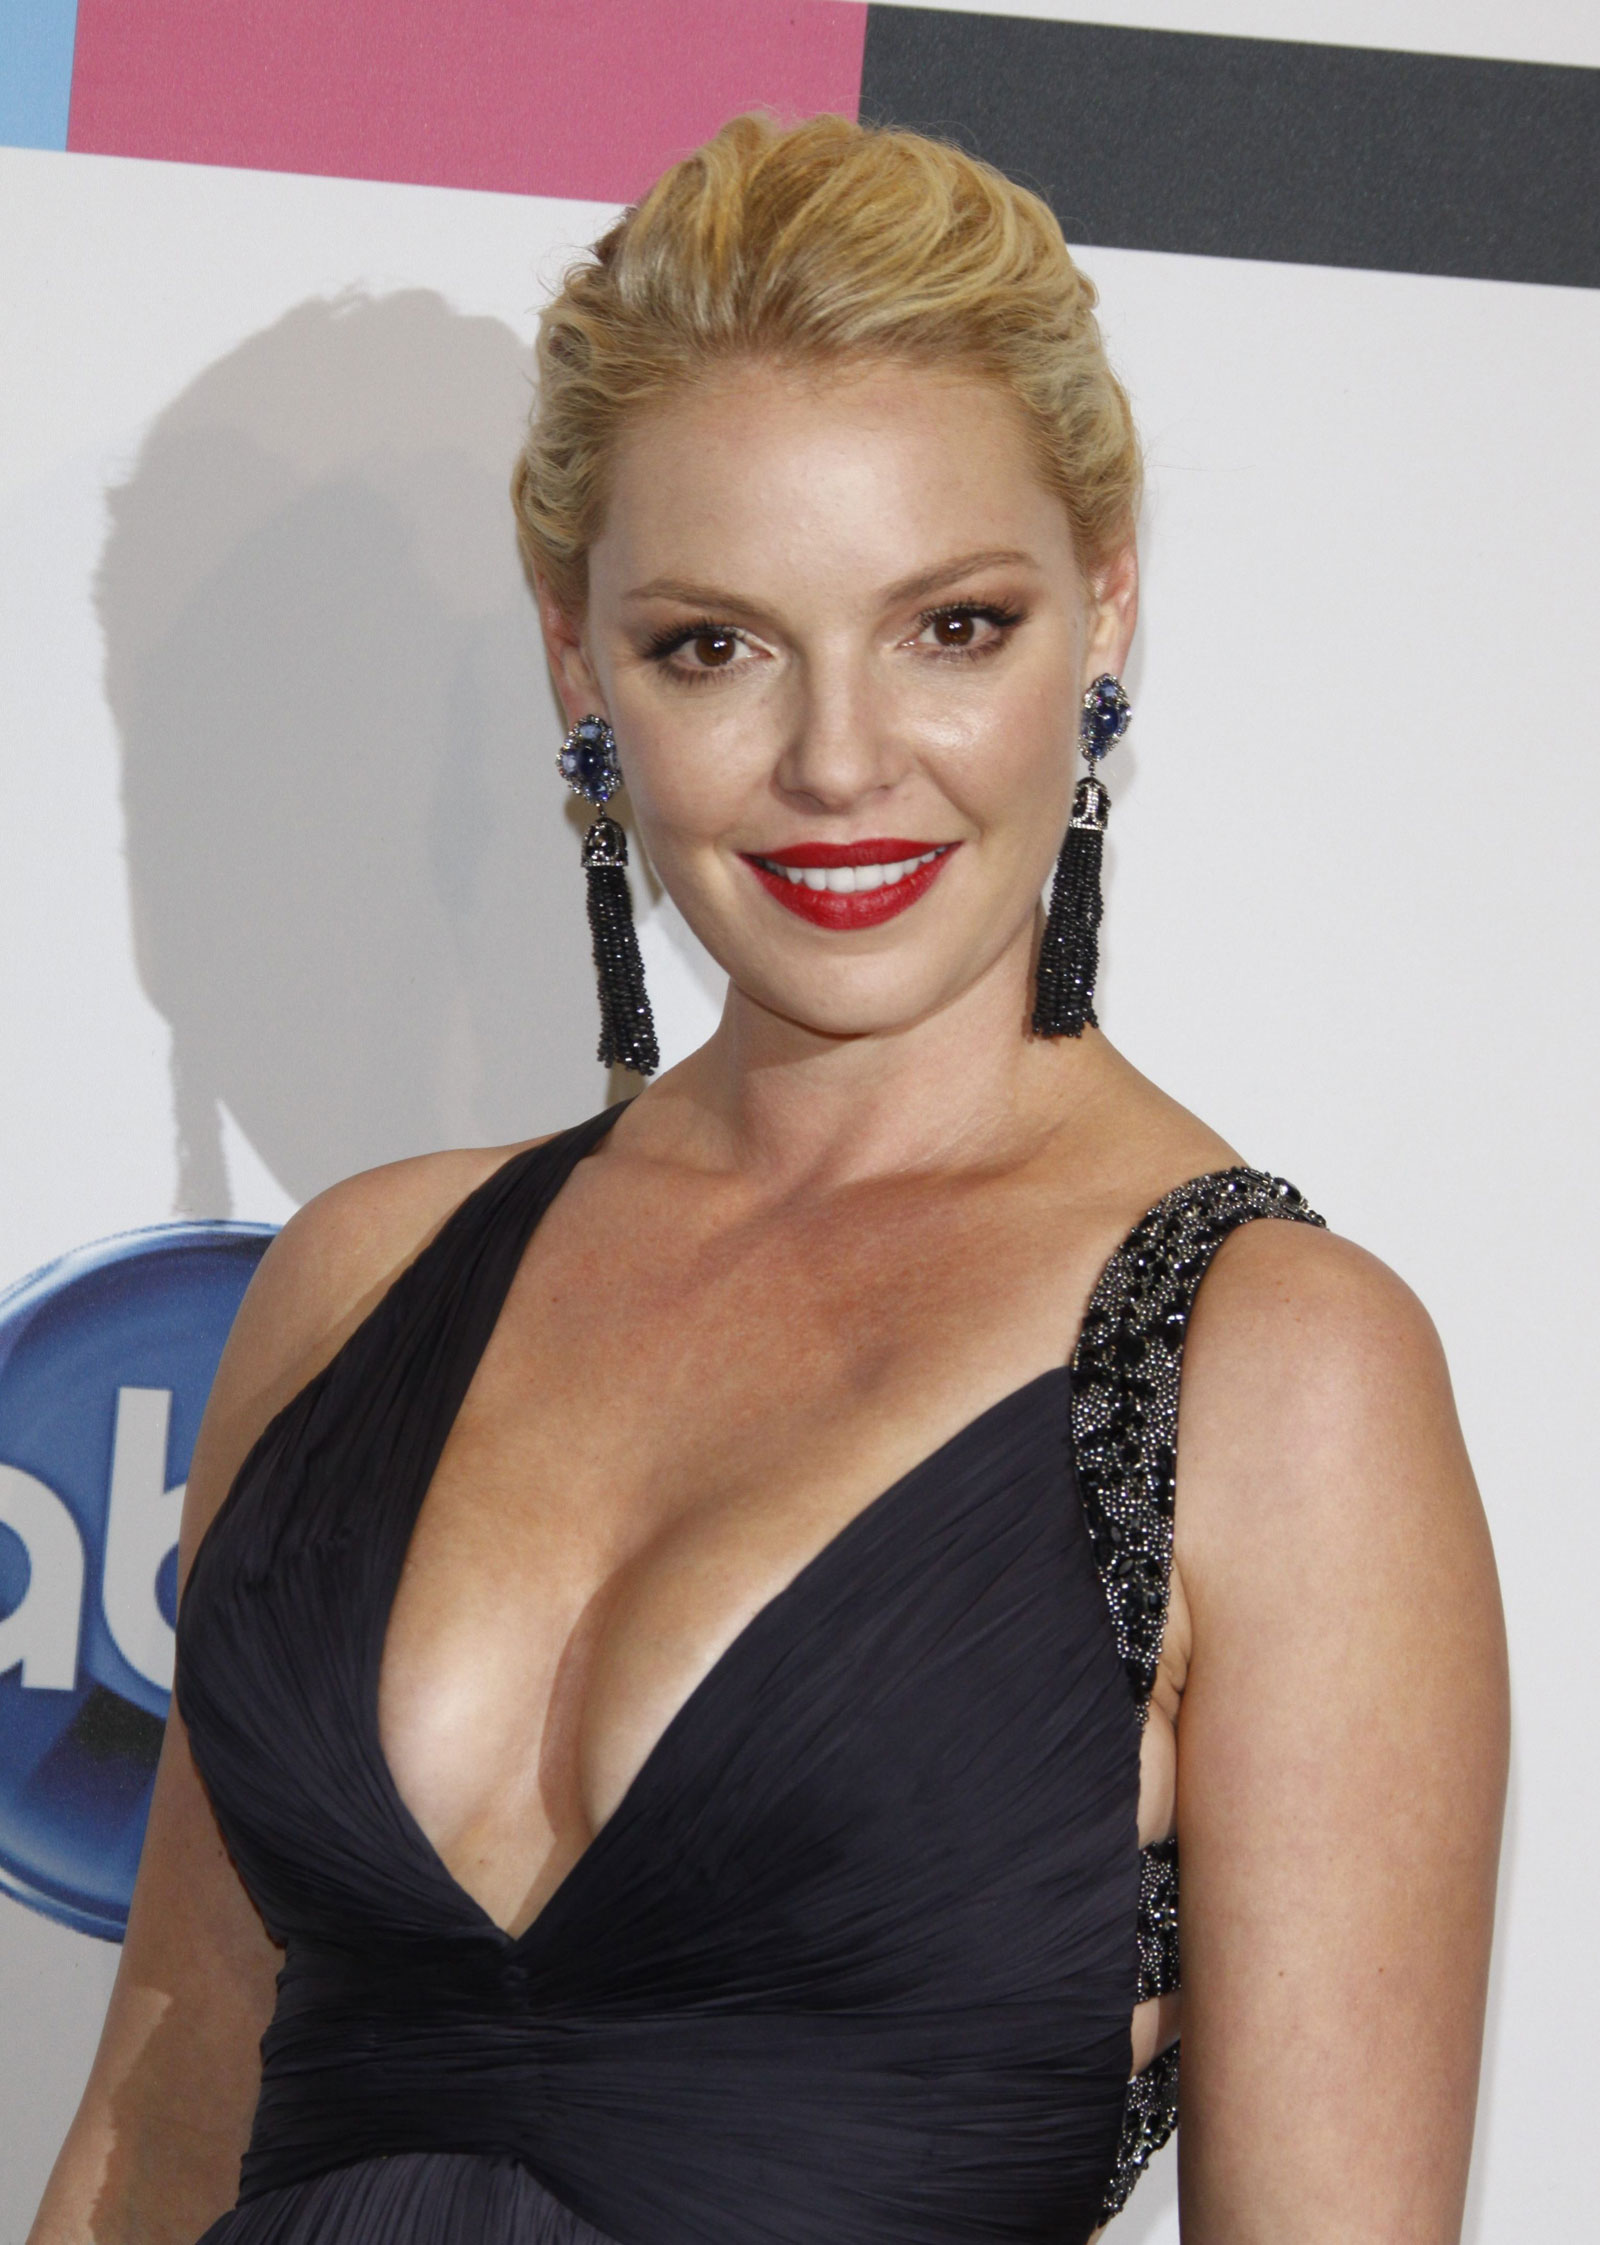 katherine heigl at 39th annual american music awards in